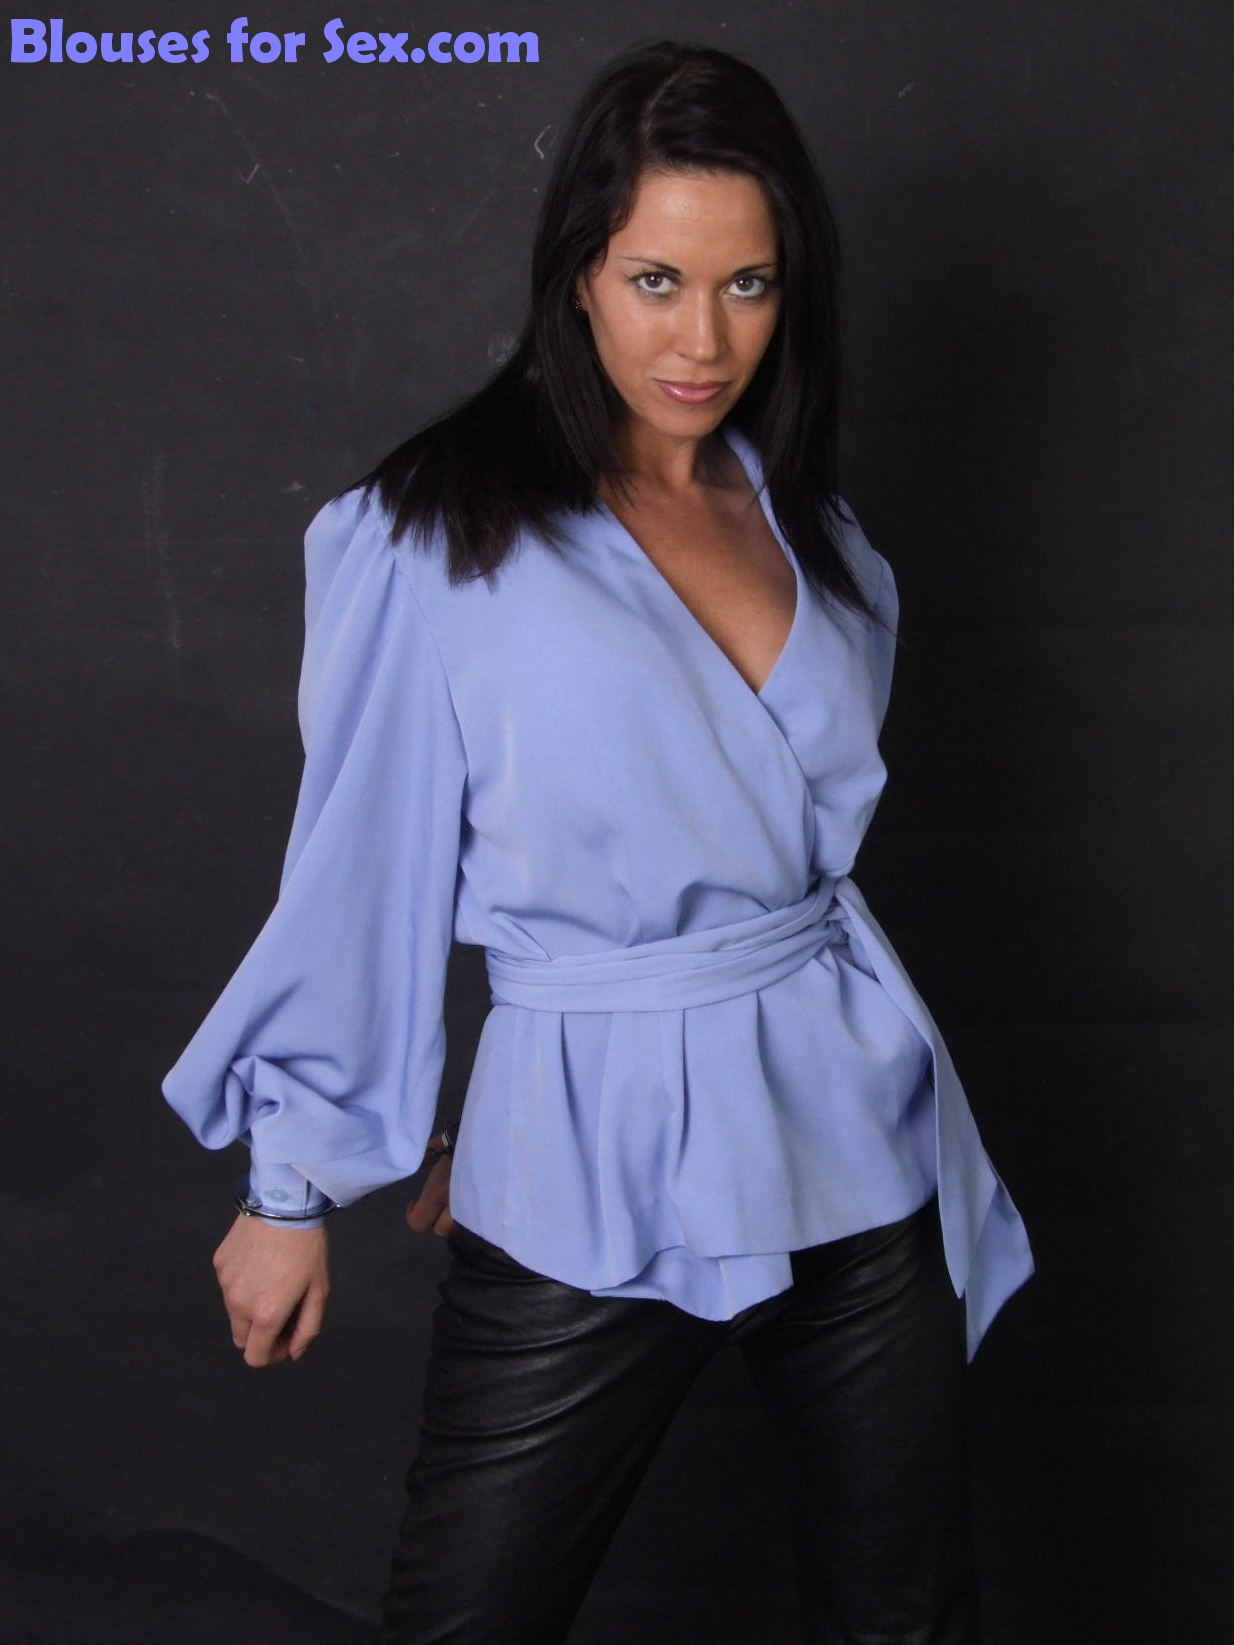 Tunic Blouse, Leather and Cuffs